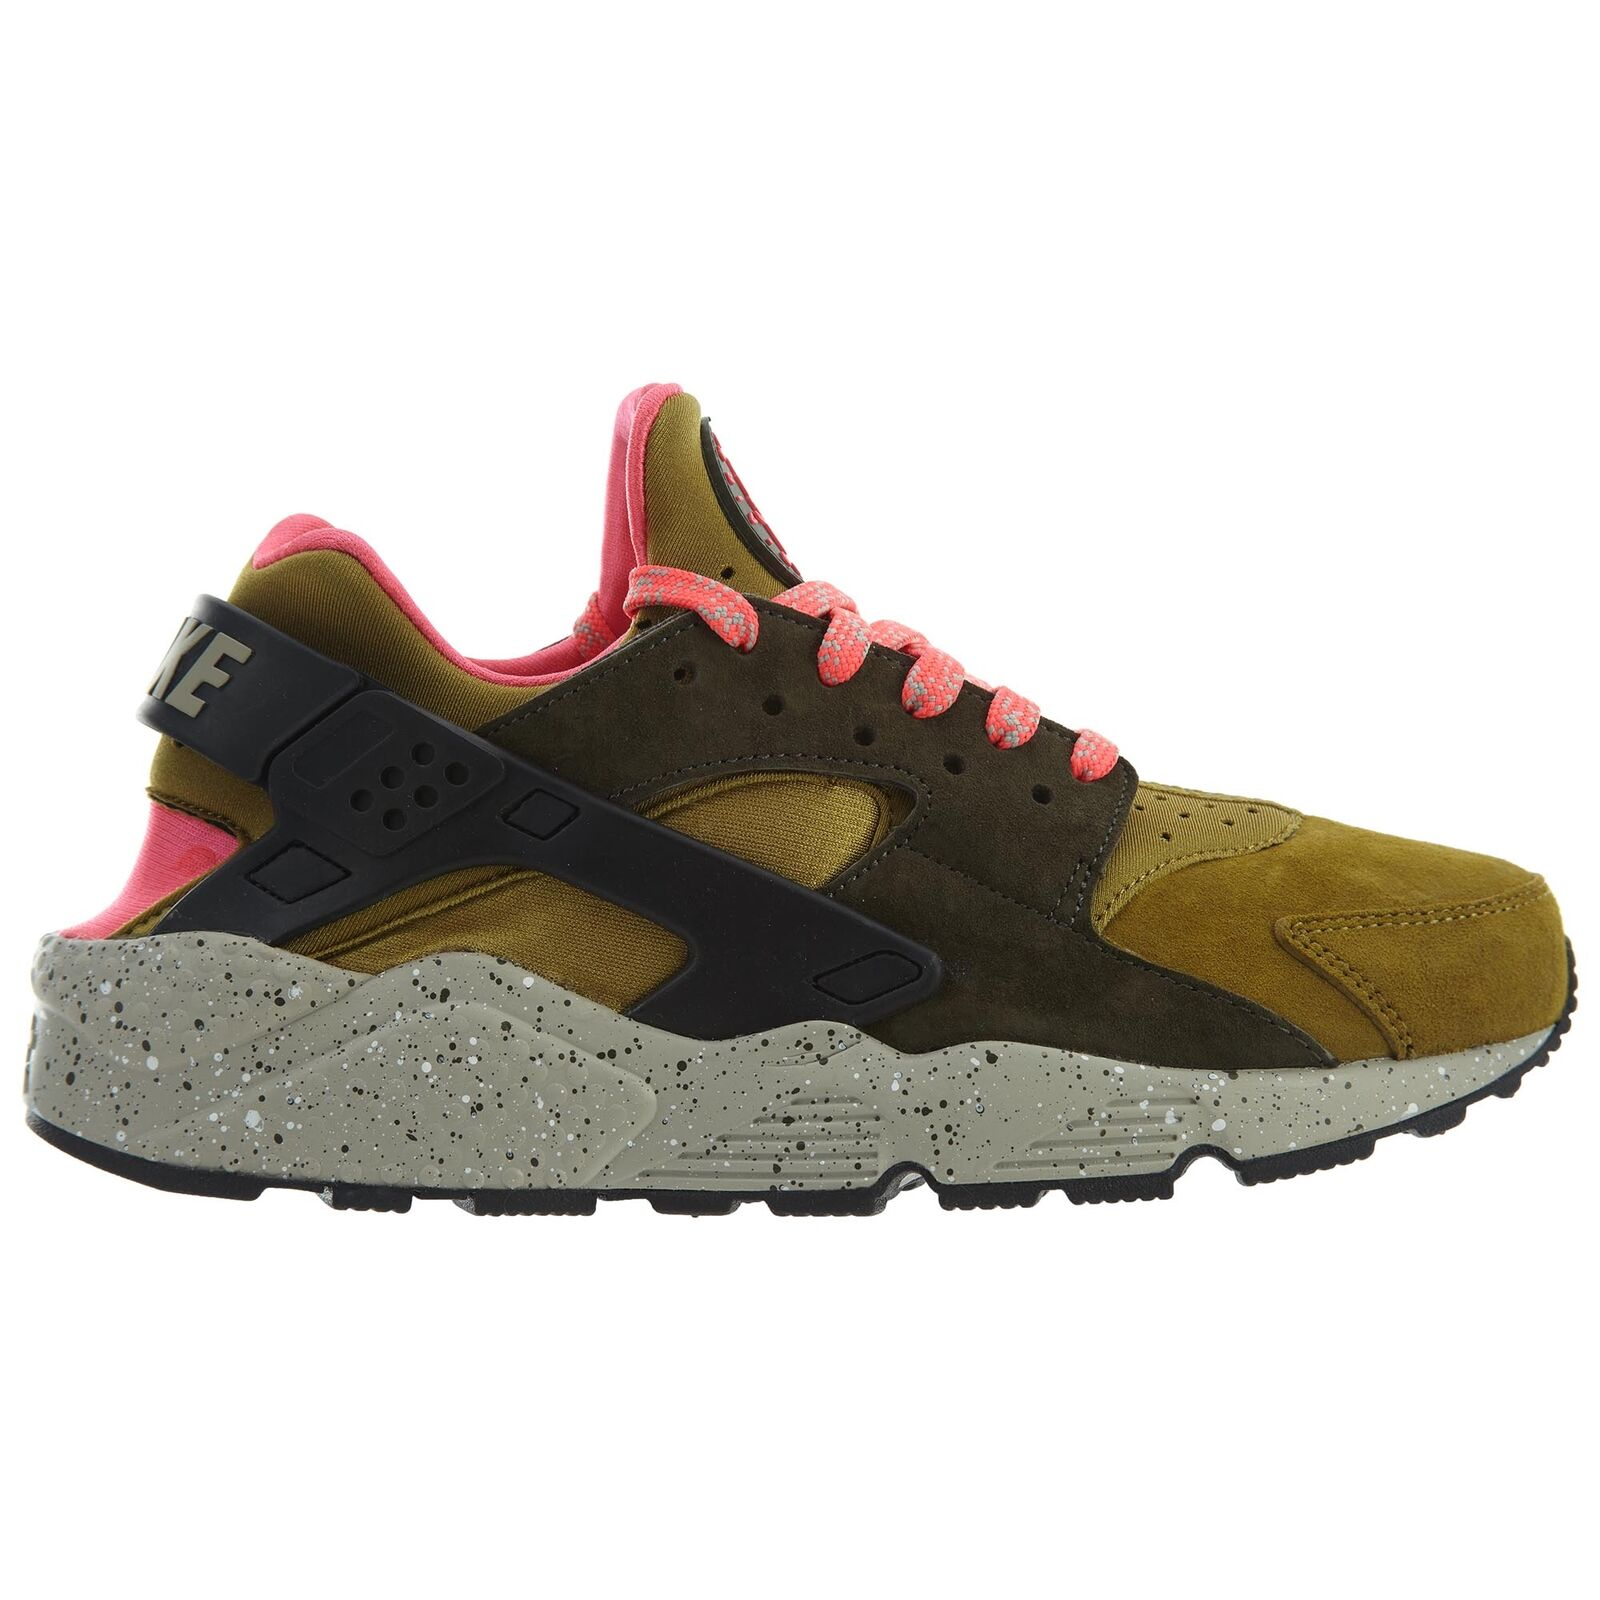 Nike Air Huarache Running Run Premium Uomo 704830-302 Desert Moss Running Huarache Shoes Sz 11.5 1af95e